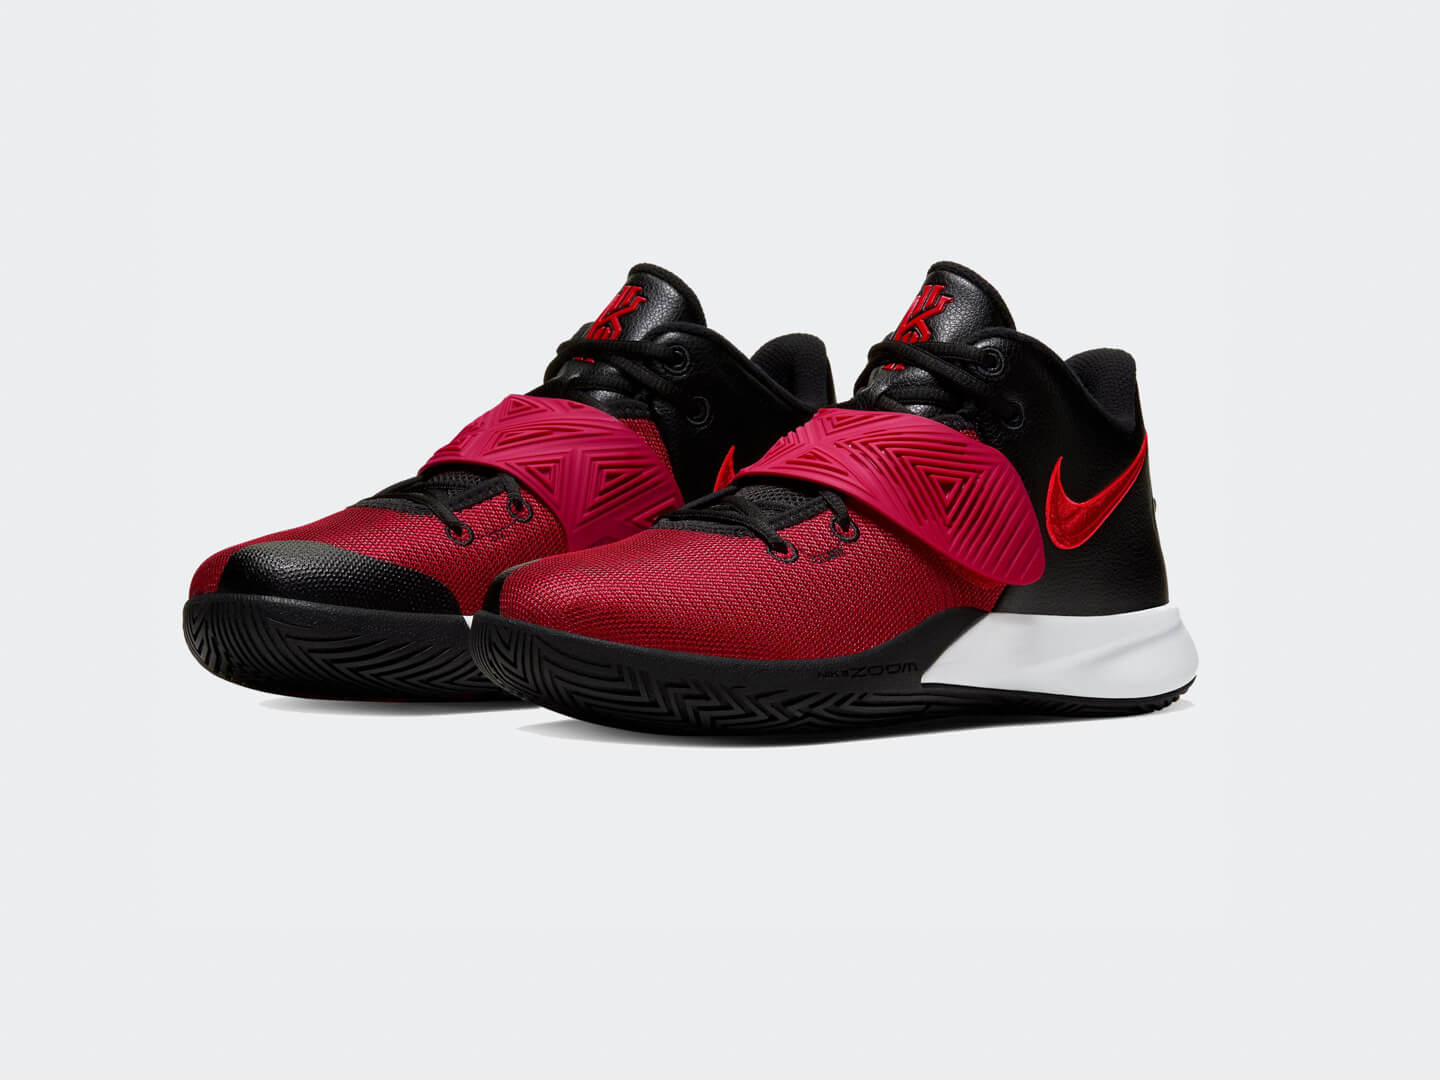 Кроссовки Nike Kyrie Flytrap III / black, university red